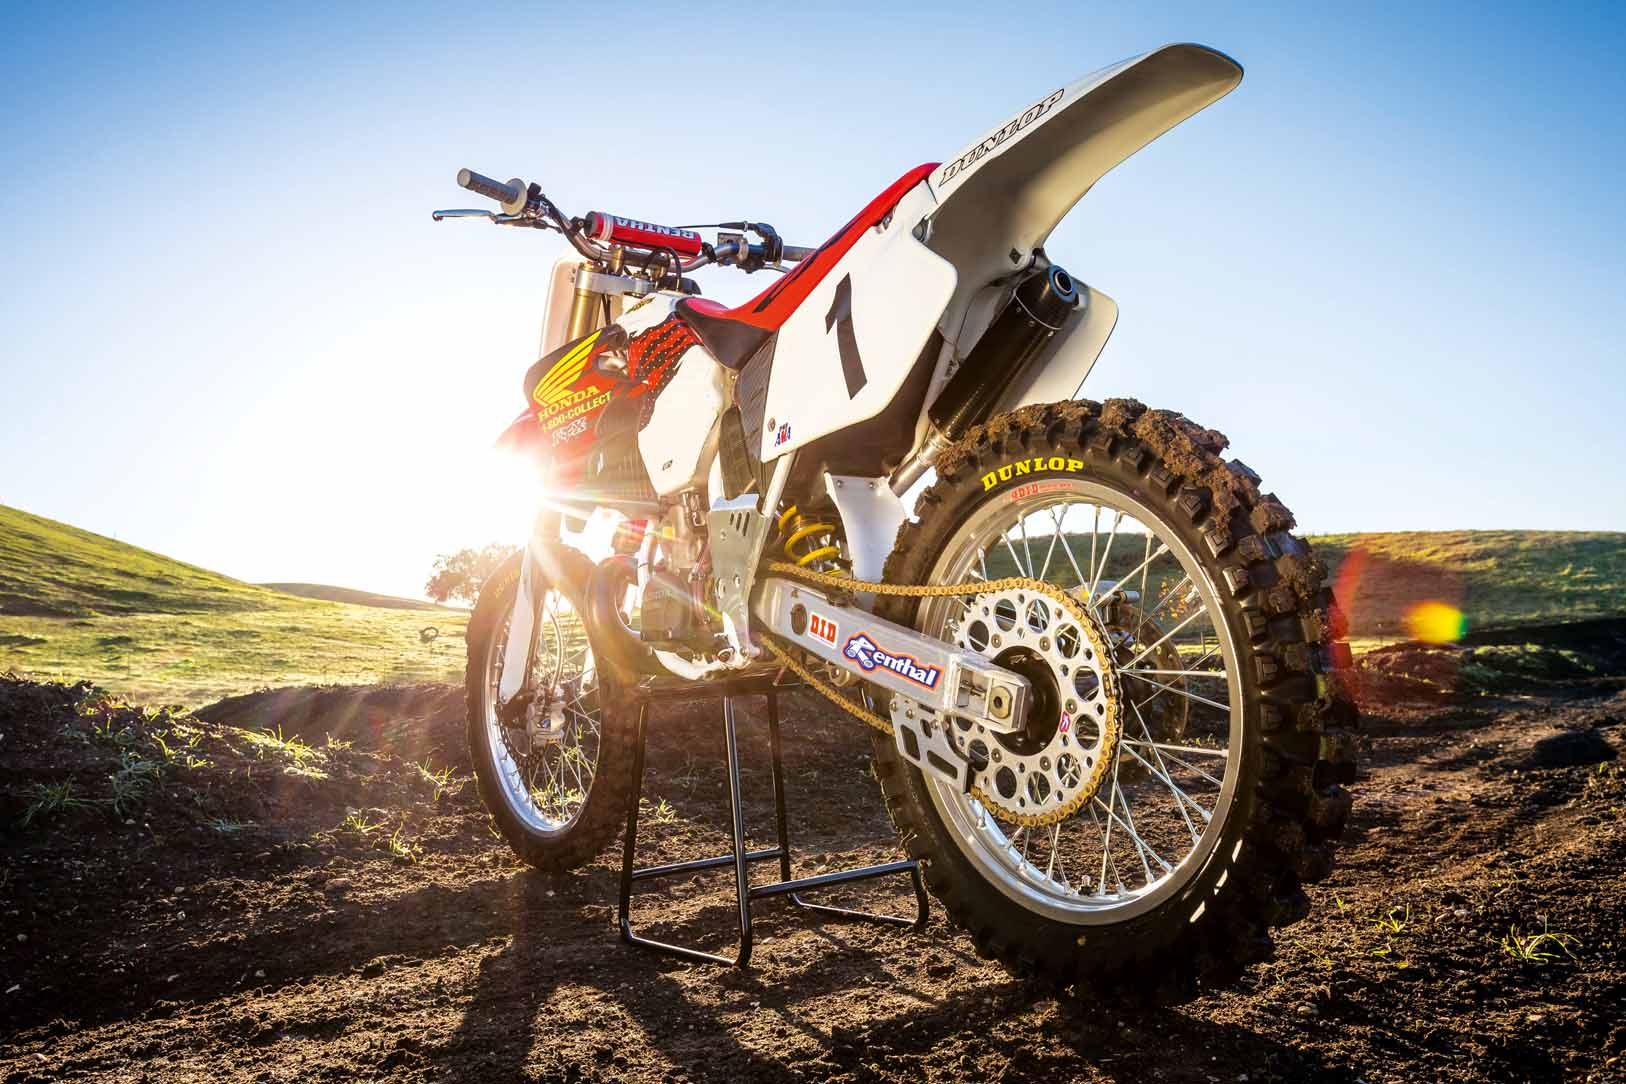 Jeremy McGrath's 1996 Honda CR250R sits prior to a video shoot with Ken Roczen, recreating segments from the original Terra Firma 2 motocross video at Castillo Ranch in Los Alamos, California, USA on 28 December 2016. // Garth Milan/Red Bull Content Pool // P-20170109-01418 // Usage for editorial use only // Please go to www.redbullcontentpool.com for further information. //